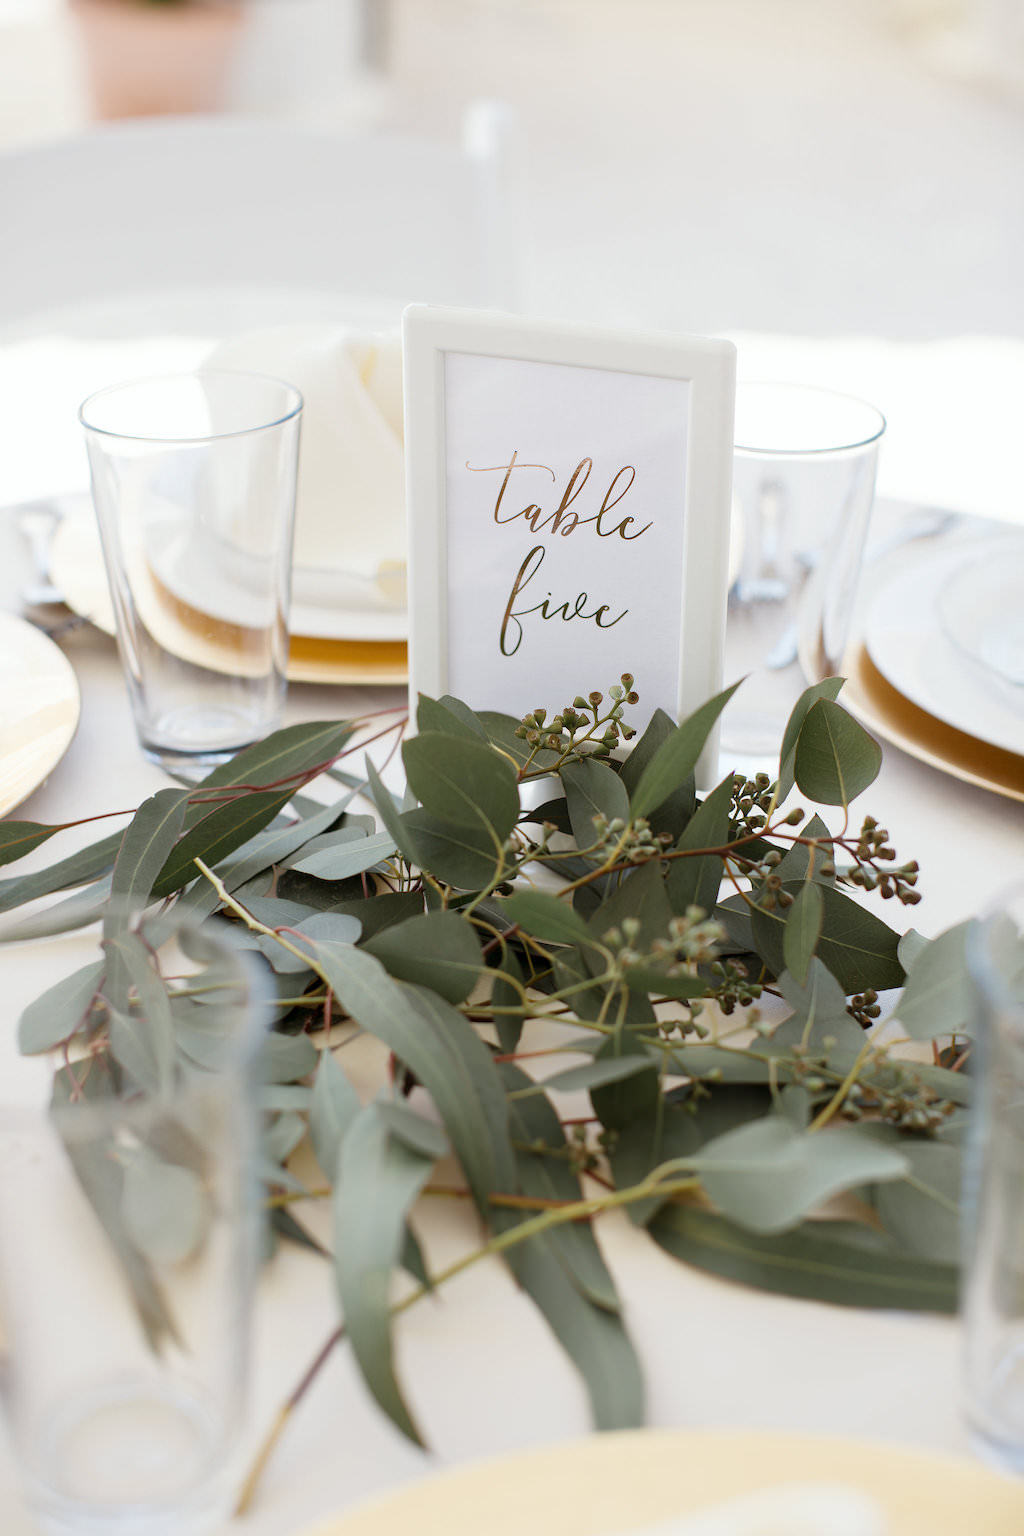 Tropical Inspired Wedding Reception Decor, Round Tables with Ivory Tablecloths, Gold Chargers, Greenery Centerpiece, White Folding Chairs, Table Number in White Frame